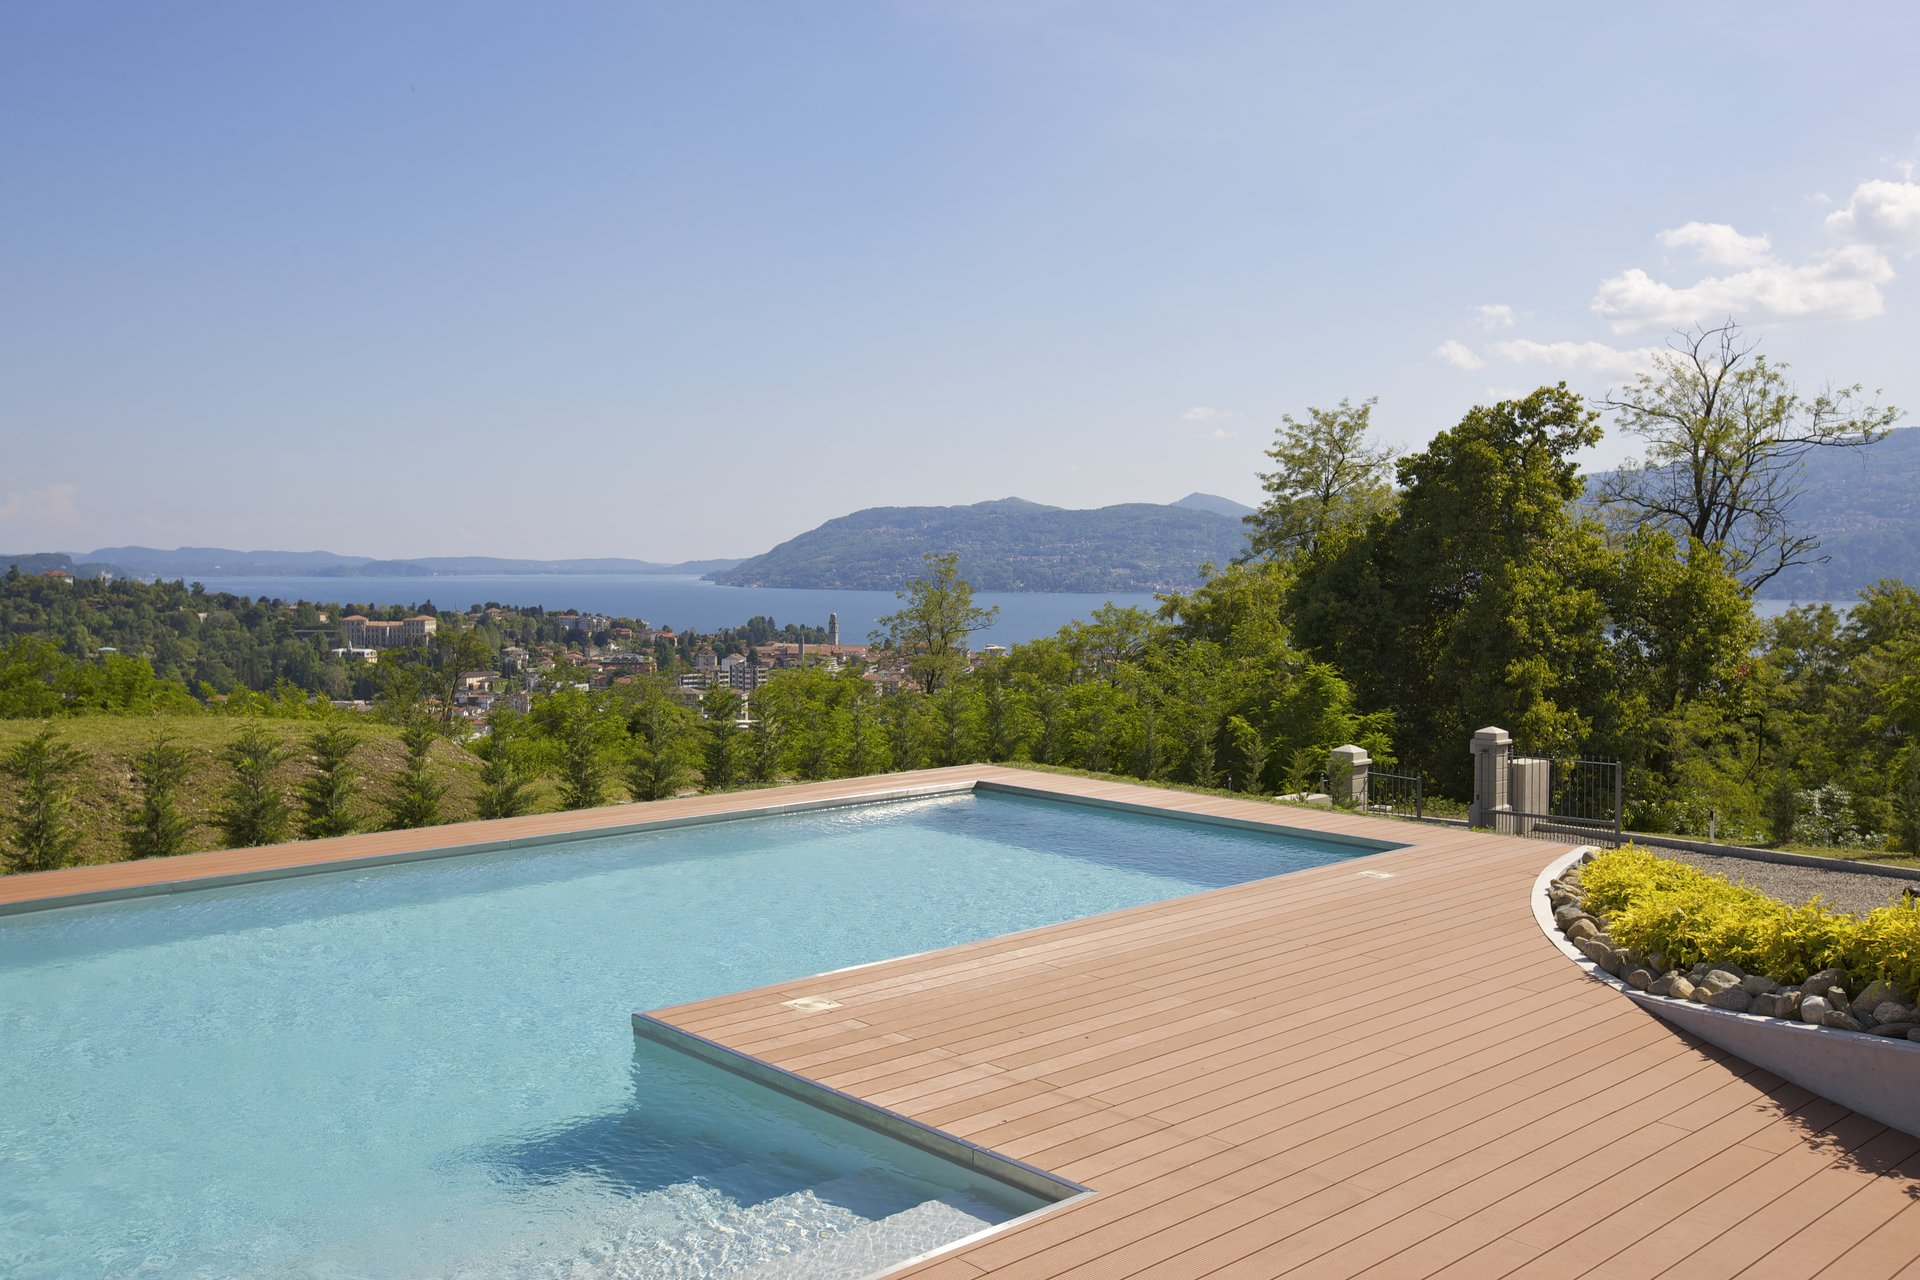 Luxury new villa for sale in Verbania - outdoor swimming pool